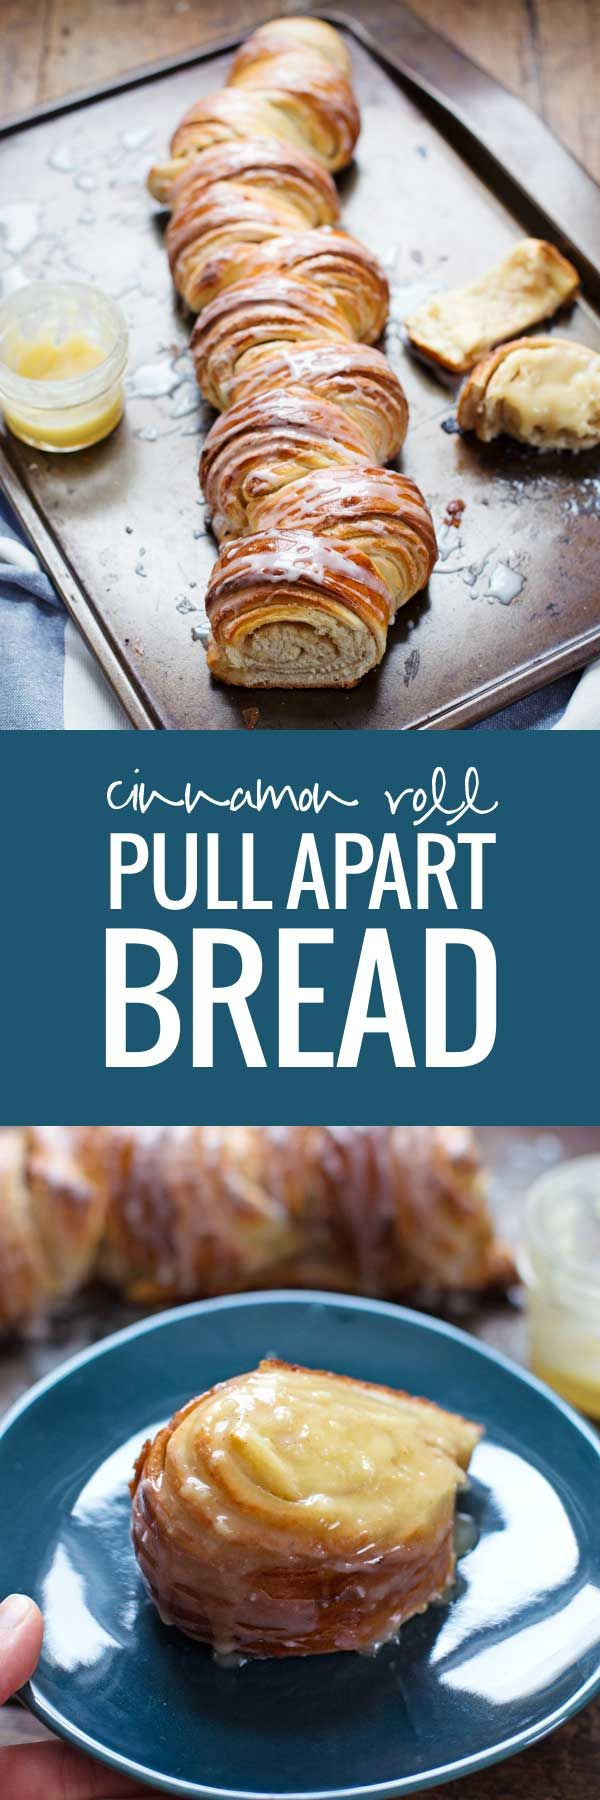 Homemade Cinnamon Roll Pull Apart Bread - So pretty and totally irresistible.